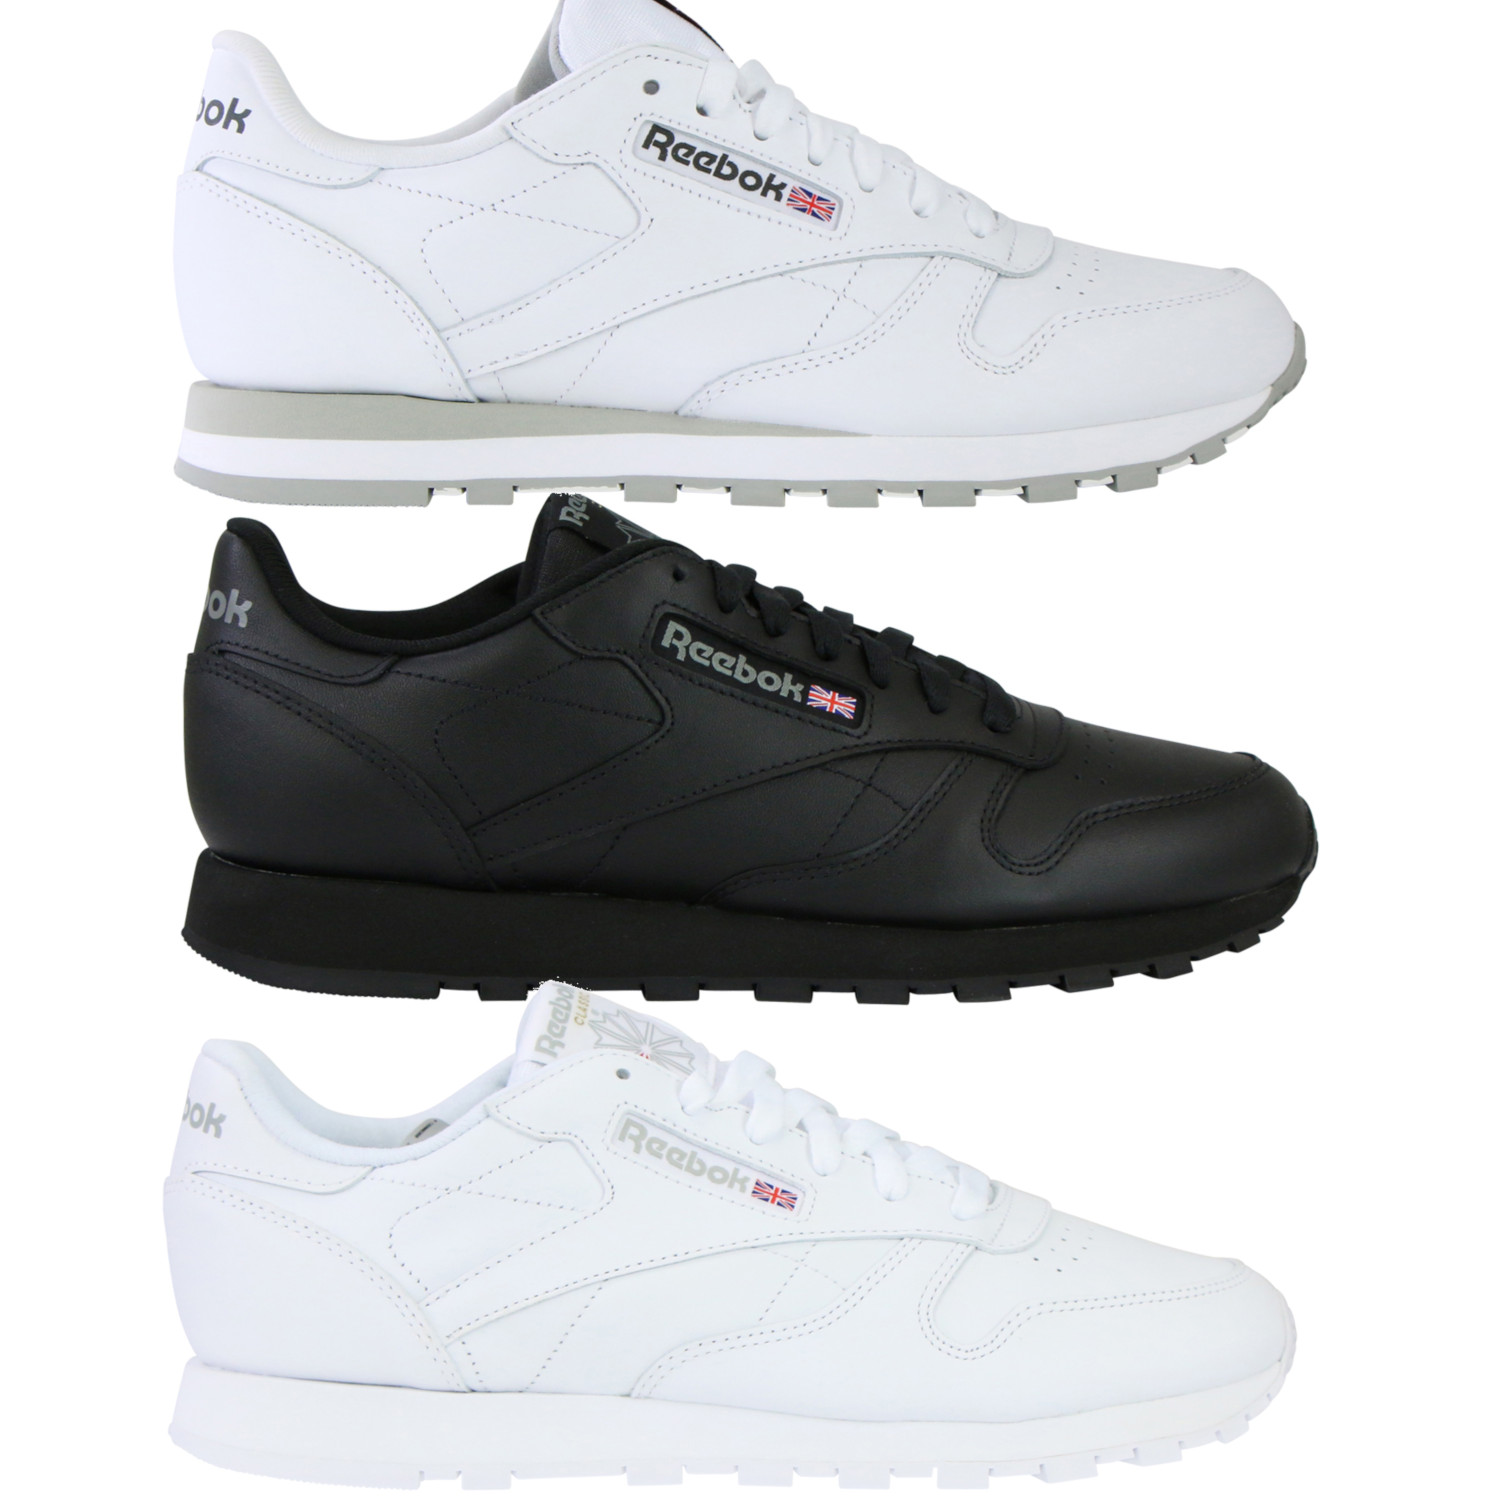 Details about Reebok Classic Leather MU FBT L PG clean Exotics Sneaker Shoes Womens show original title